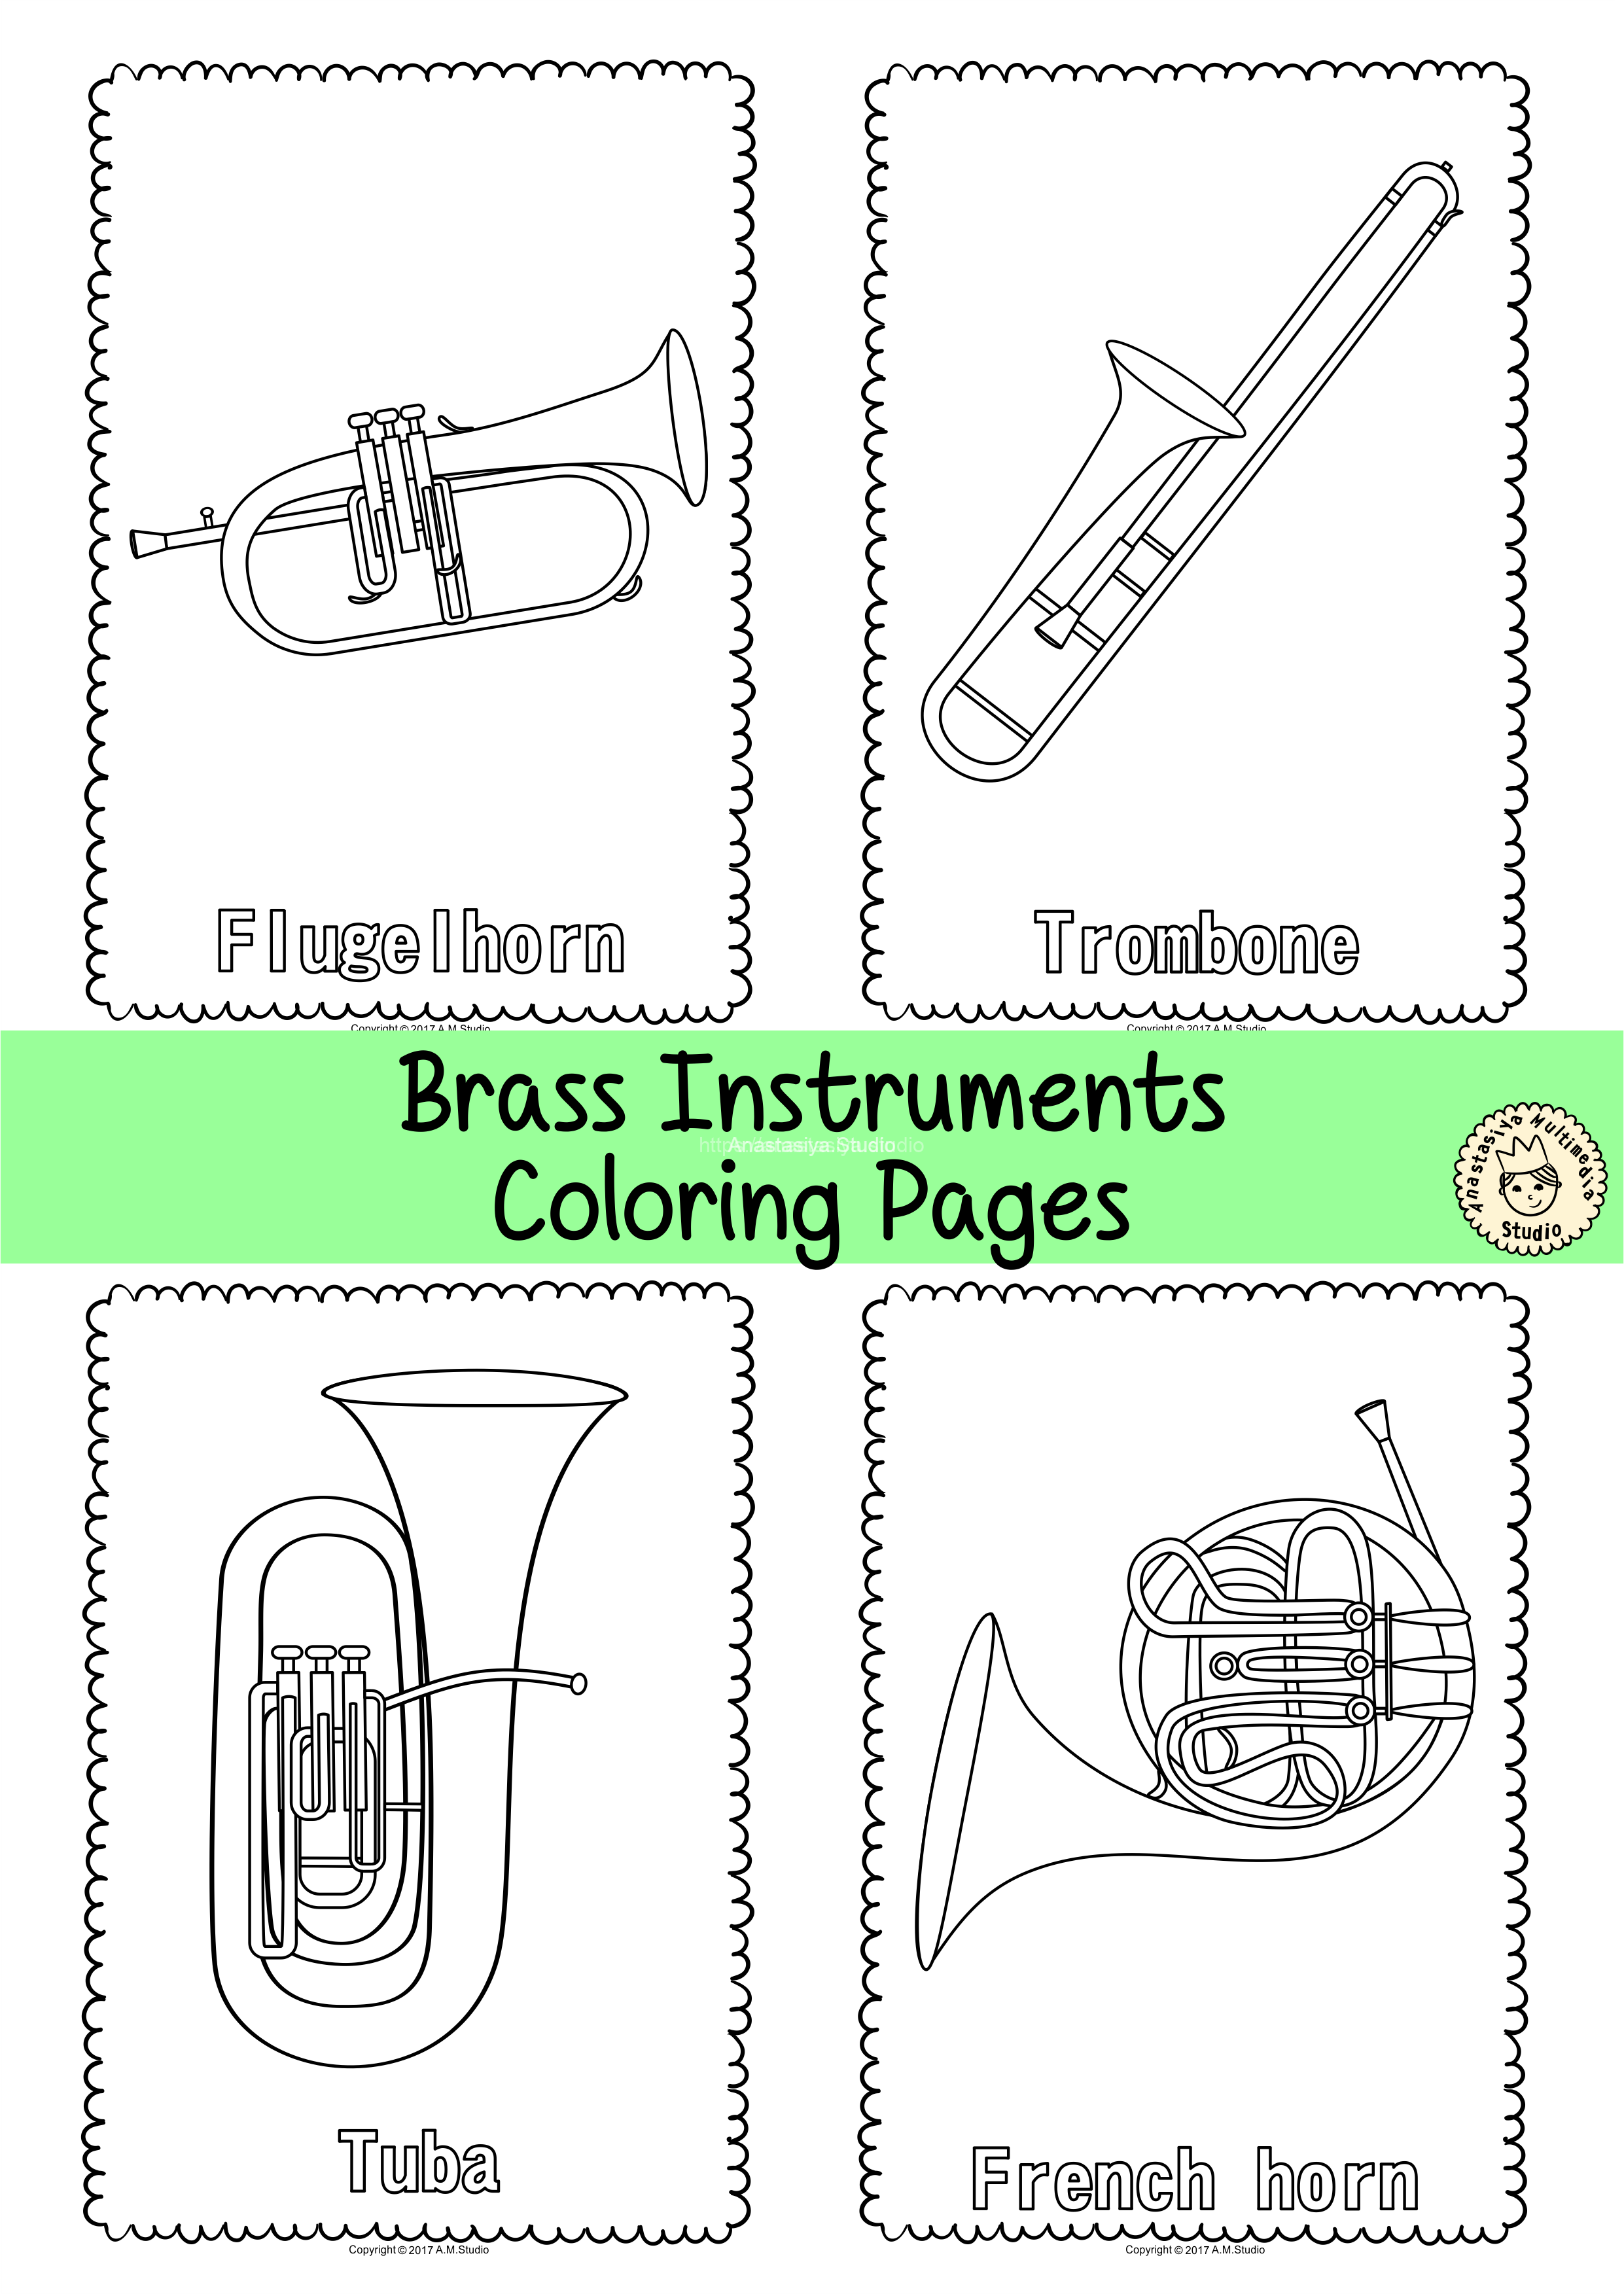 - Musical Instruments Coloring Pages * Anastasiya Multimedia Studio